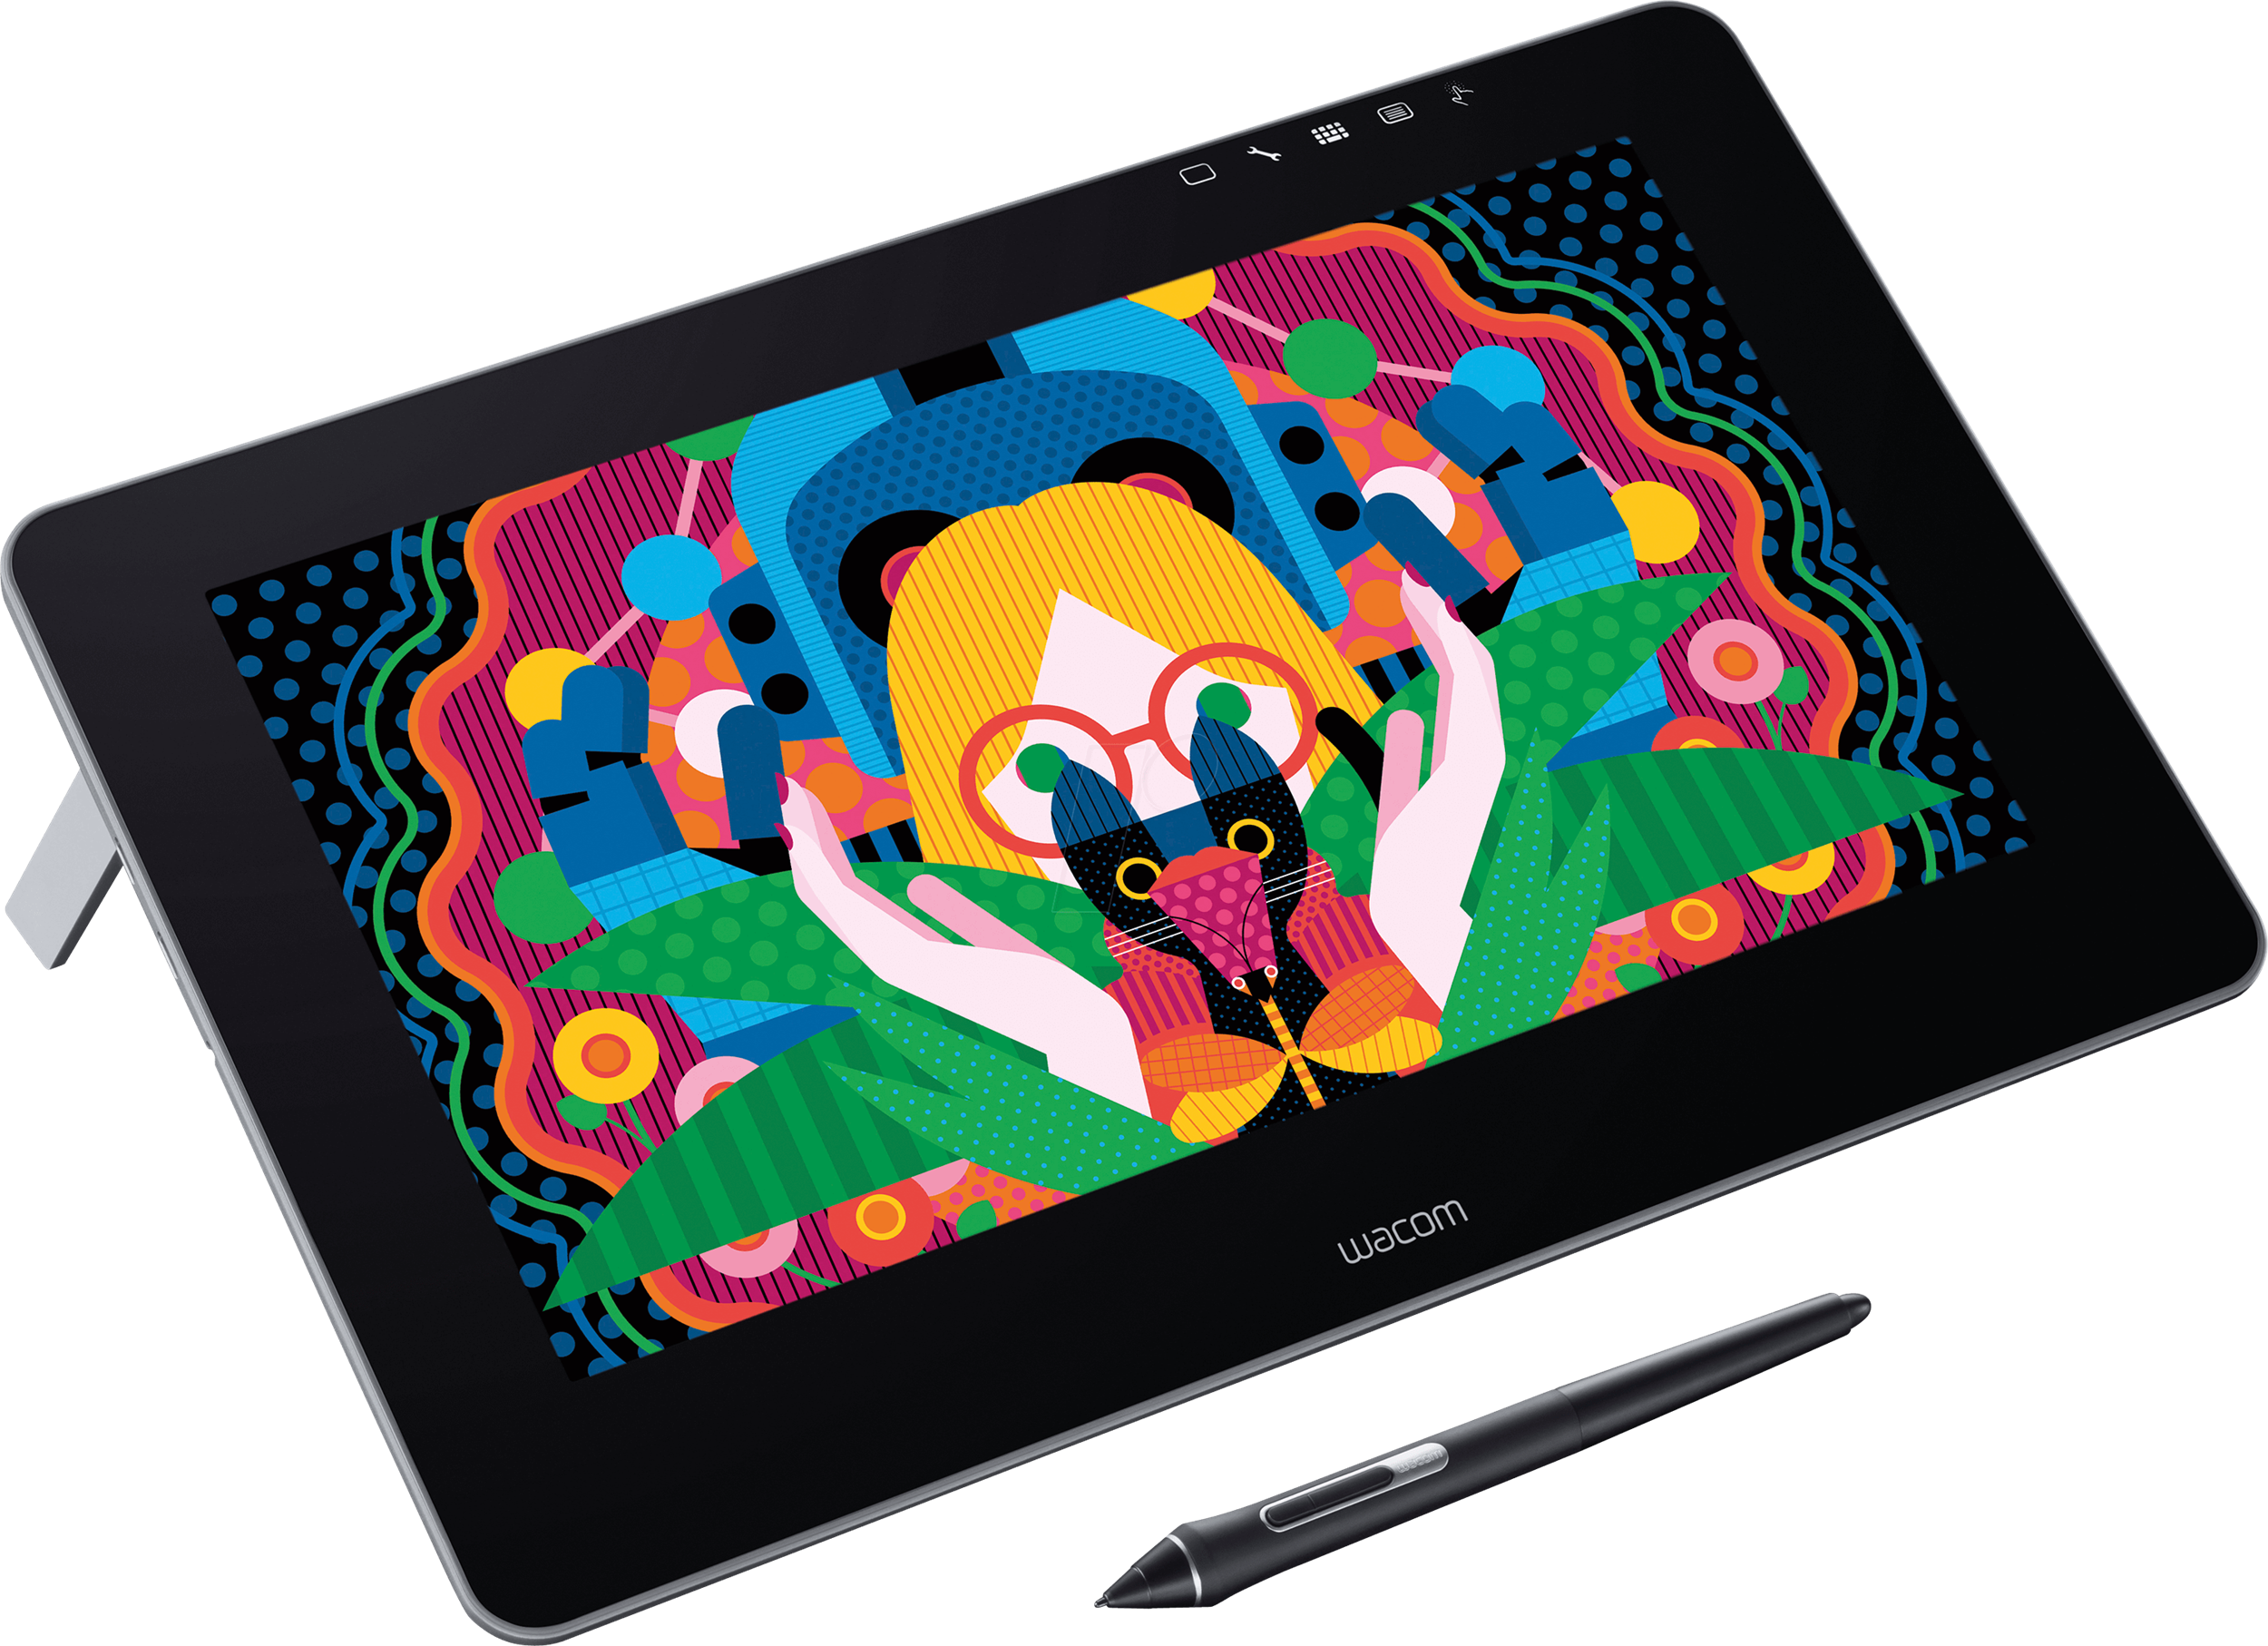 DISPLAY DIGITALIZADOR WACOM CINTIQ PRO 13 FHD